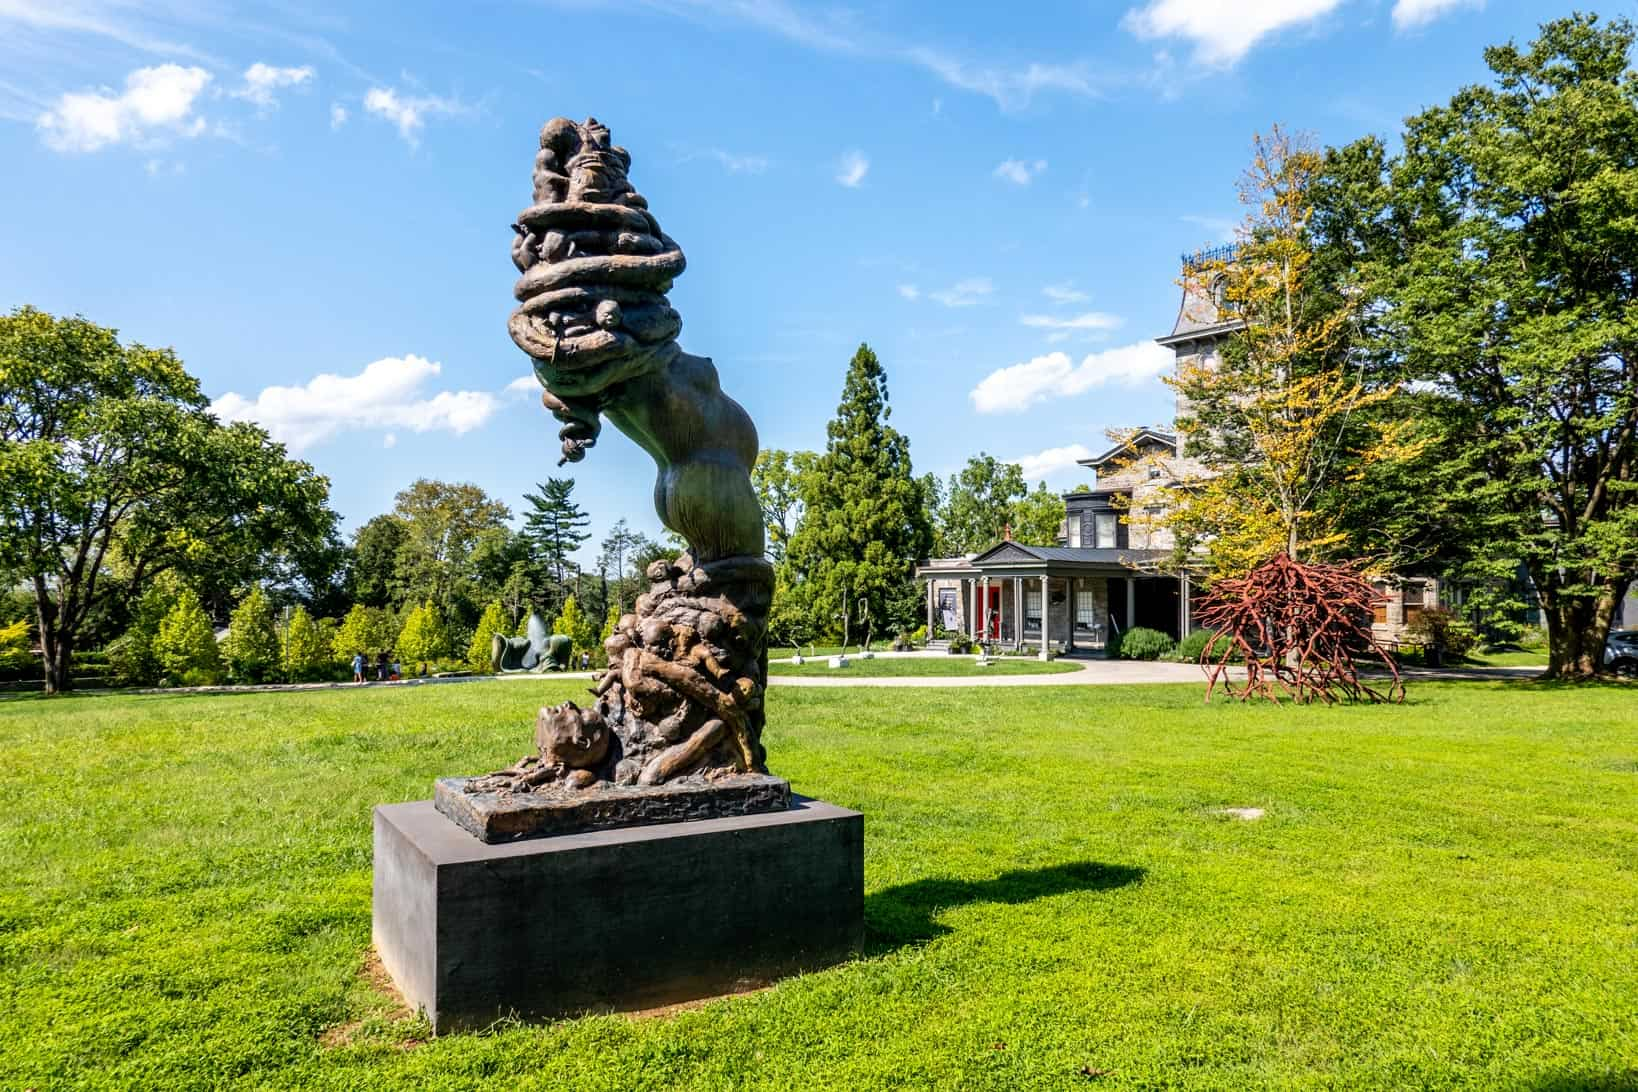 Abstract statue with human torso on the grounds of an art museum